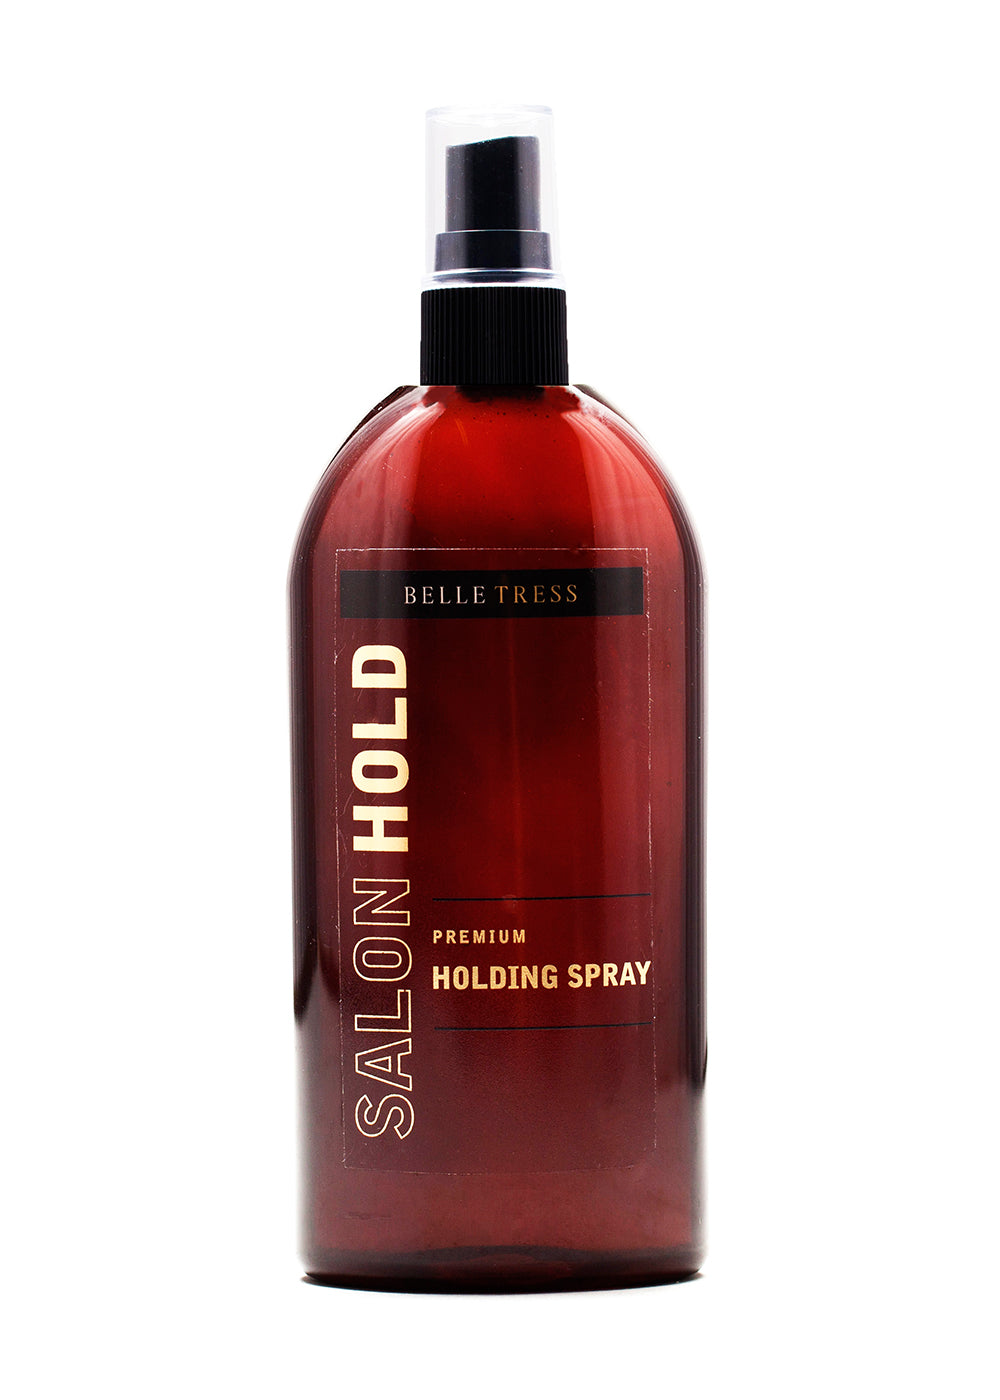 Salon Hold Premium Holding Spray